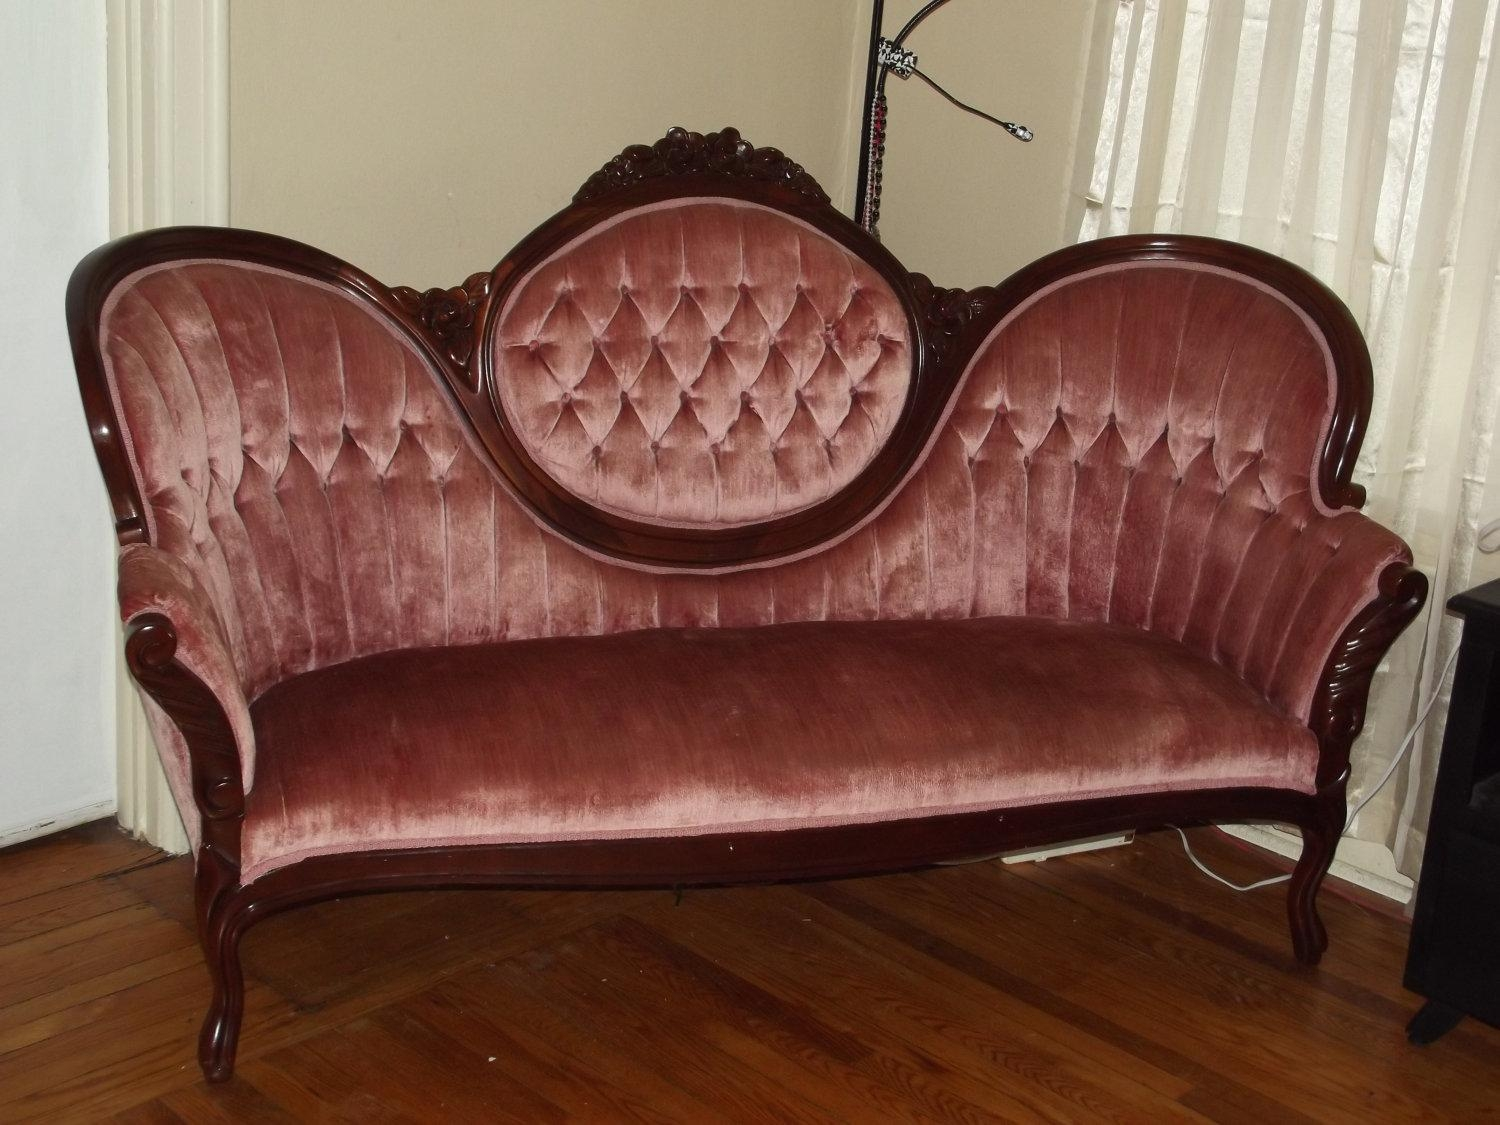 Vintage Sofa Styles Oned Chesterfield Sofa Antique Brown Thesofa